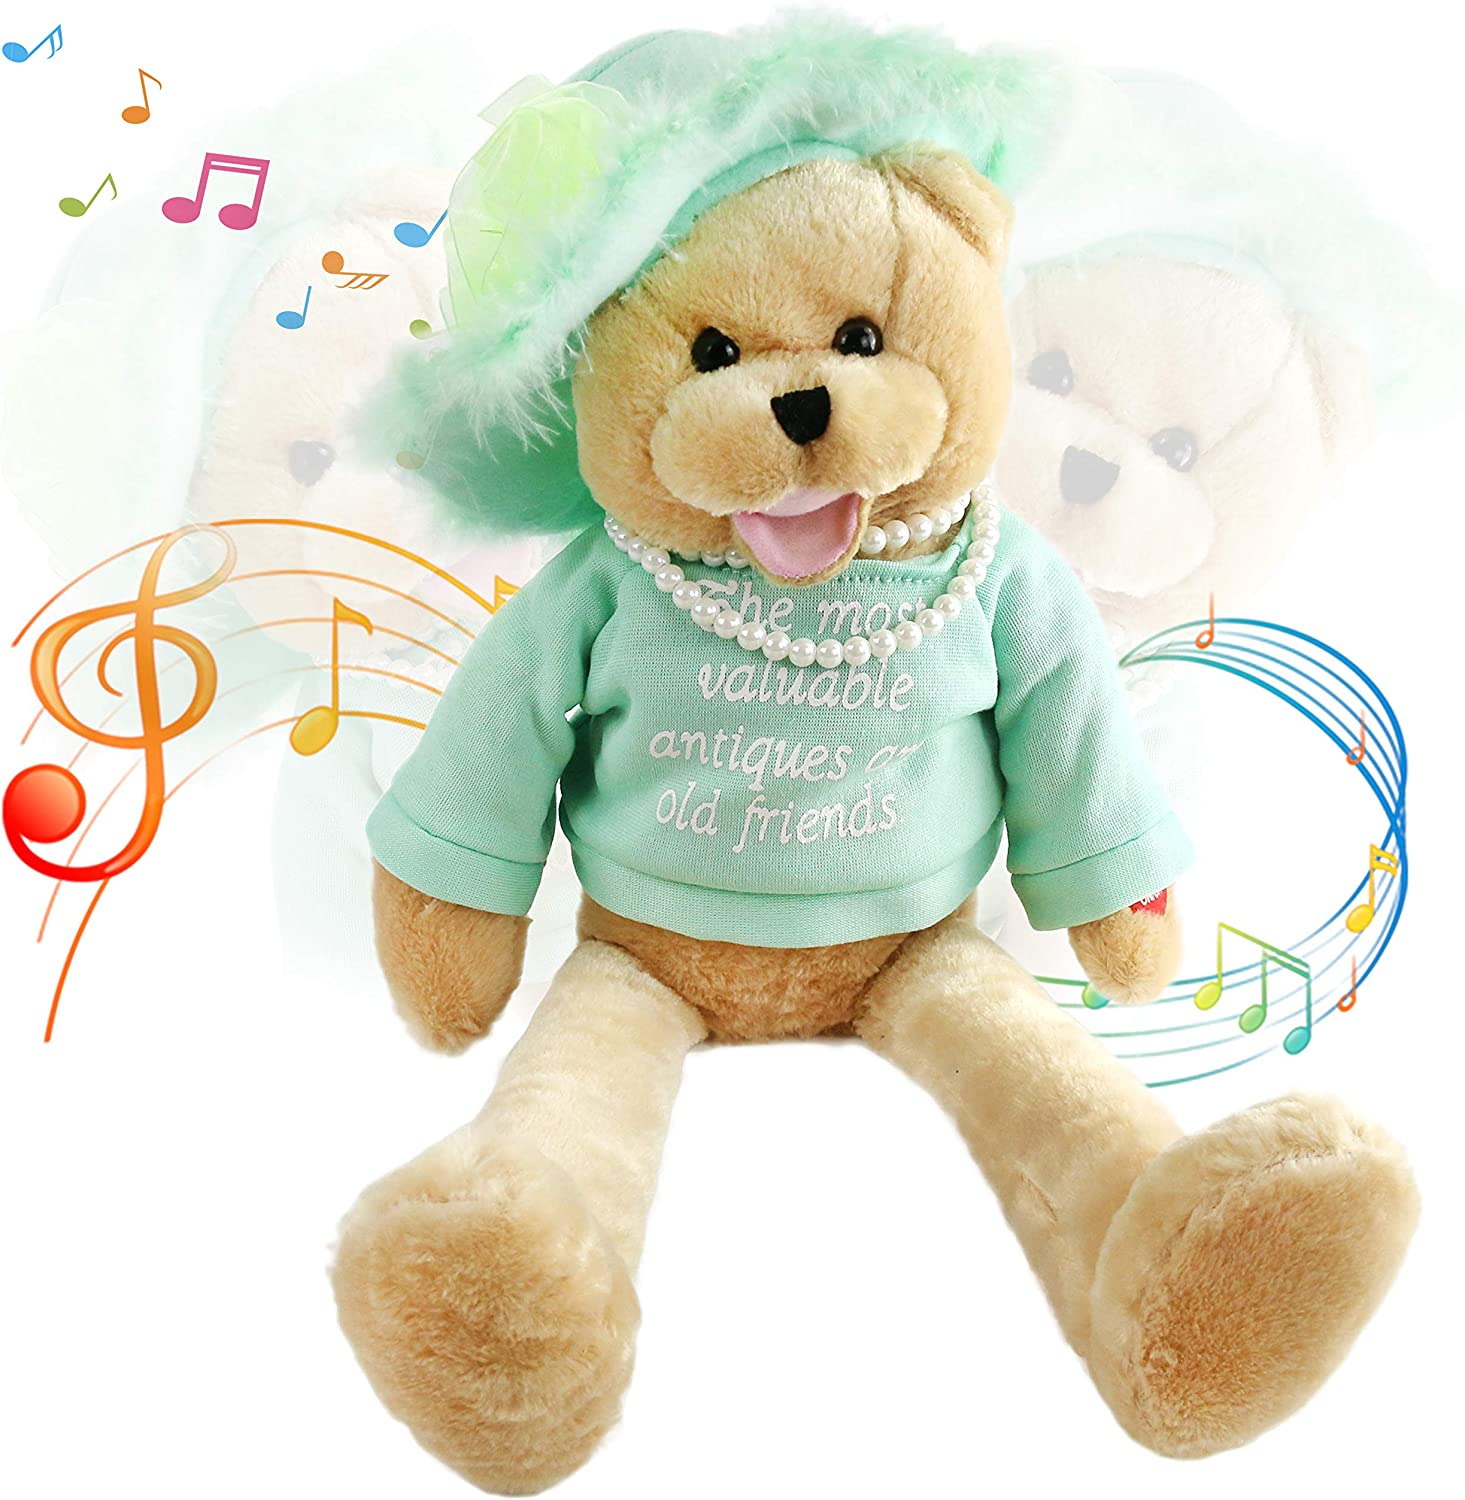 """Houwsbaby Musical Teddy Bear Recommended """"That's San Jose Mall Pearl Sings with"""